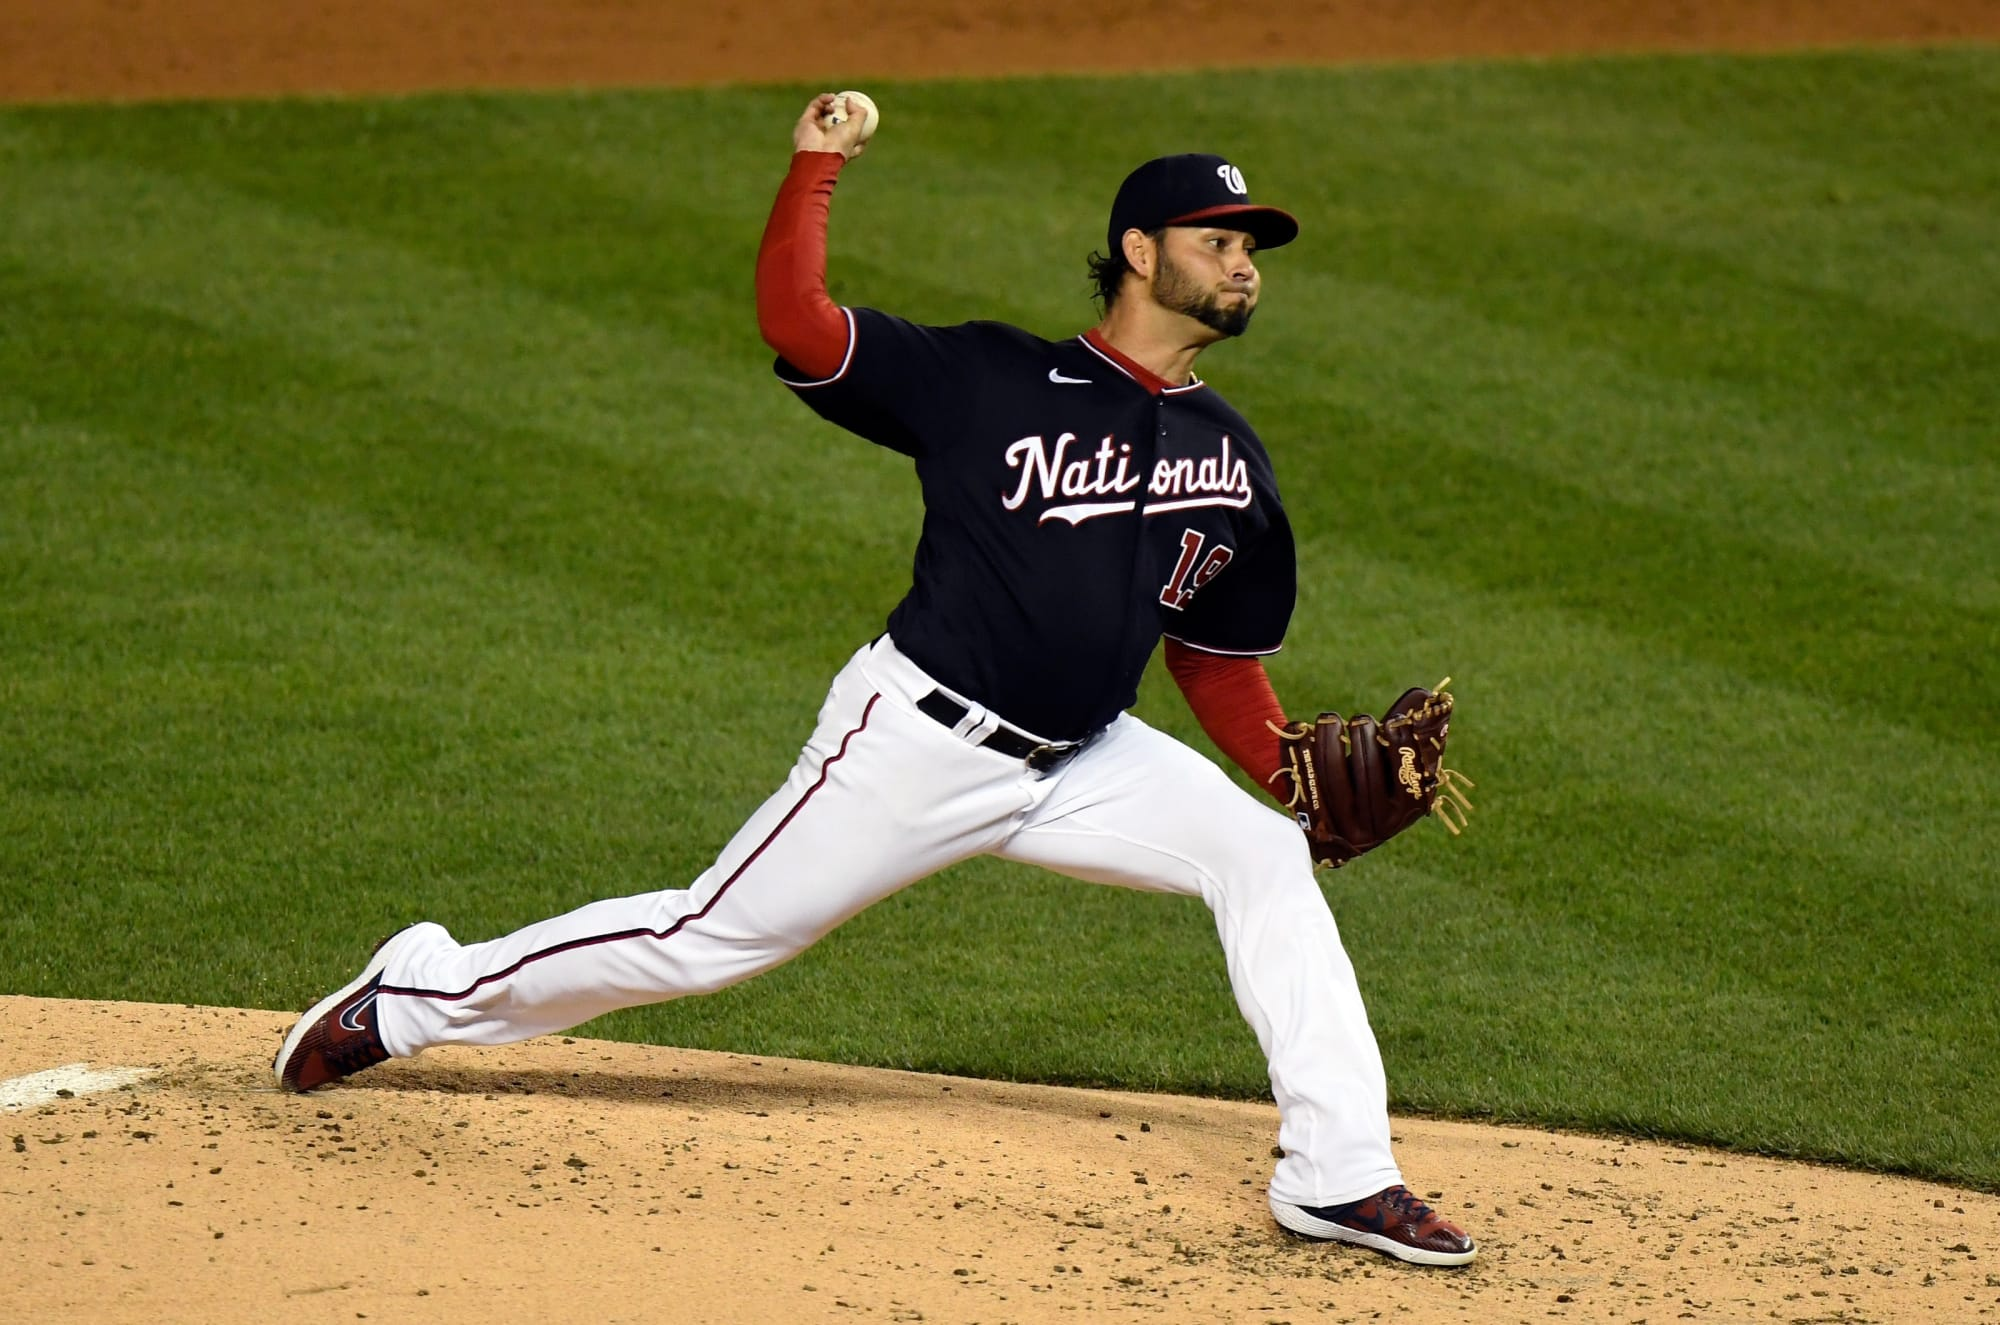 Miami Marlins: Why the Marlins should consider signing RHP Anibal Sanchez